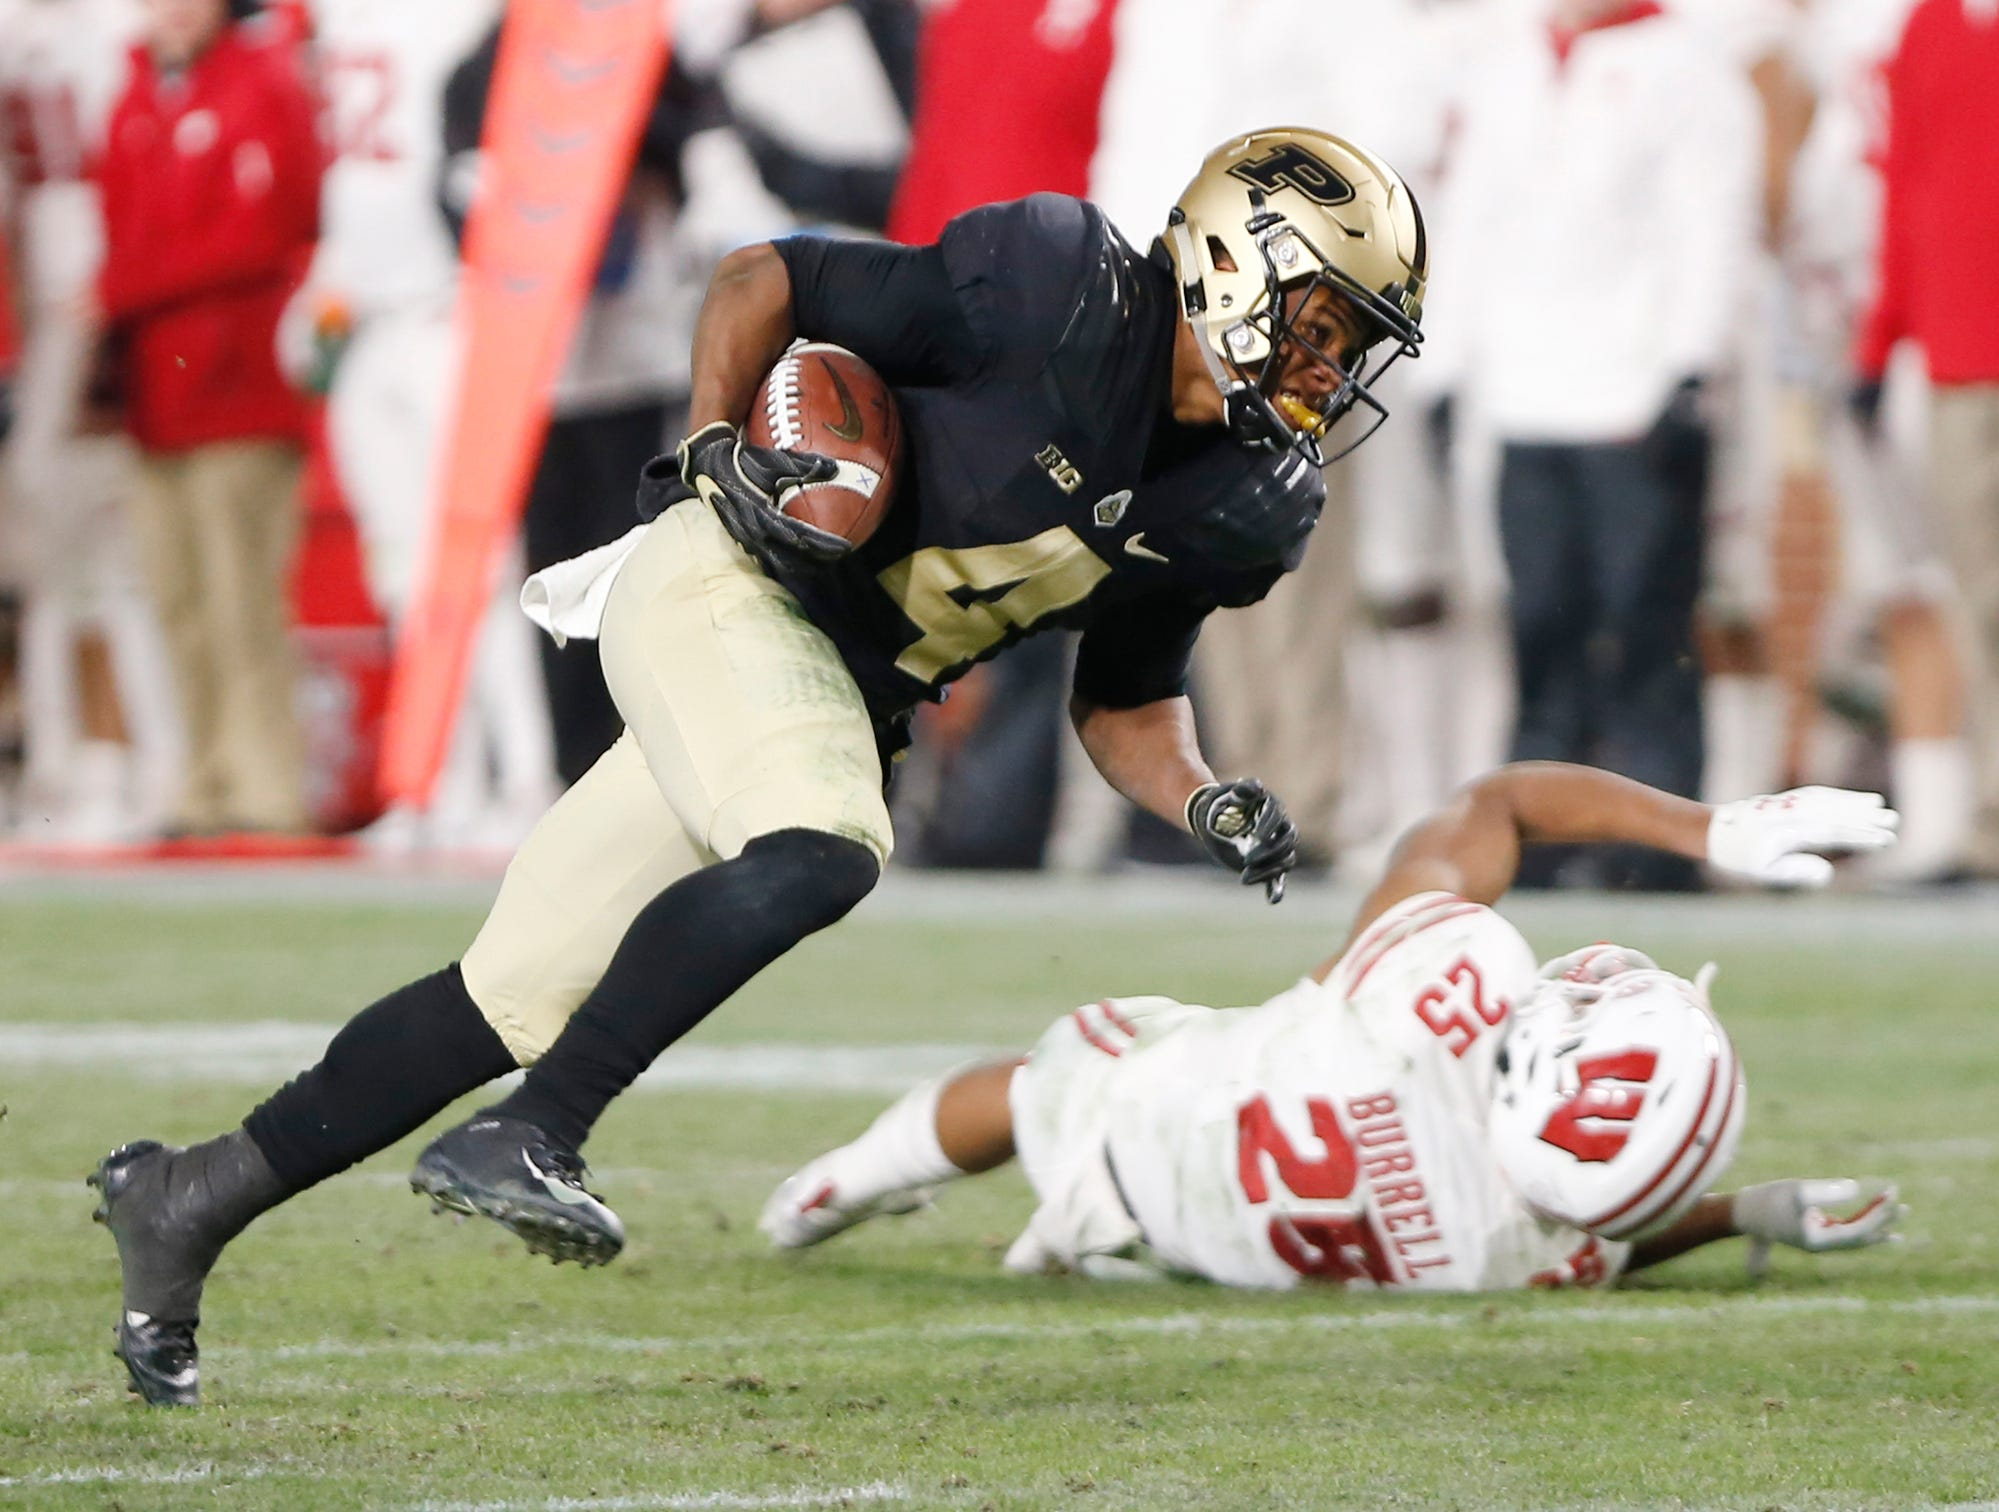 Rondale Moore of Purdue with a touchdown reception with 57 seconds remaining in the third quarter against Wisconsin Saturday, November 17, 2018, at Ross-Ade Stadium. Purdue fell to Wisconsin 47-44 3OT.